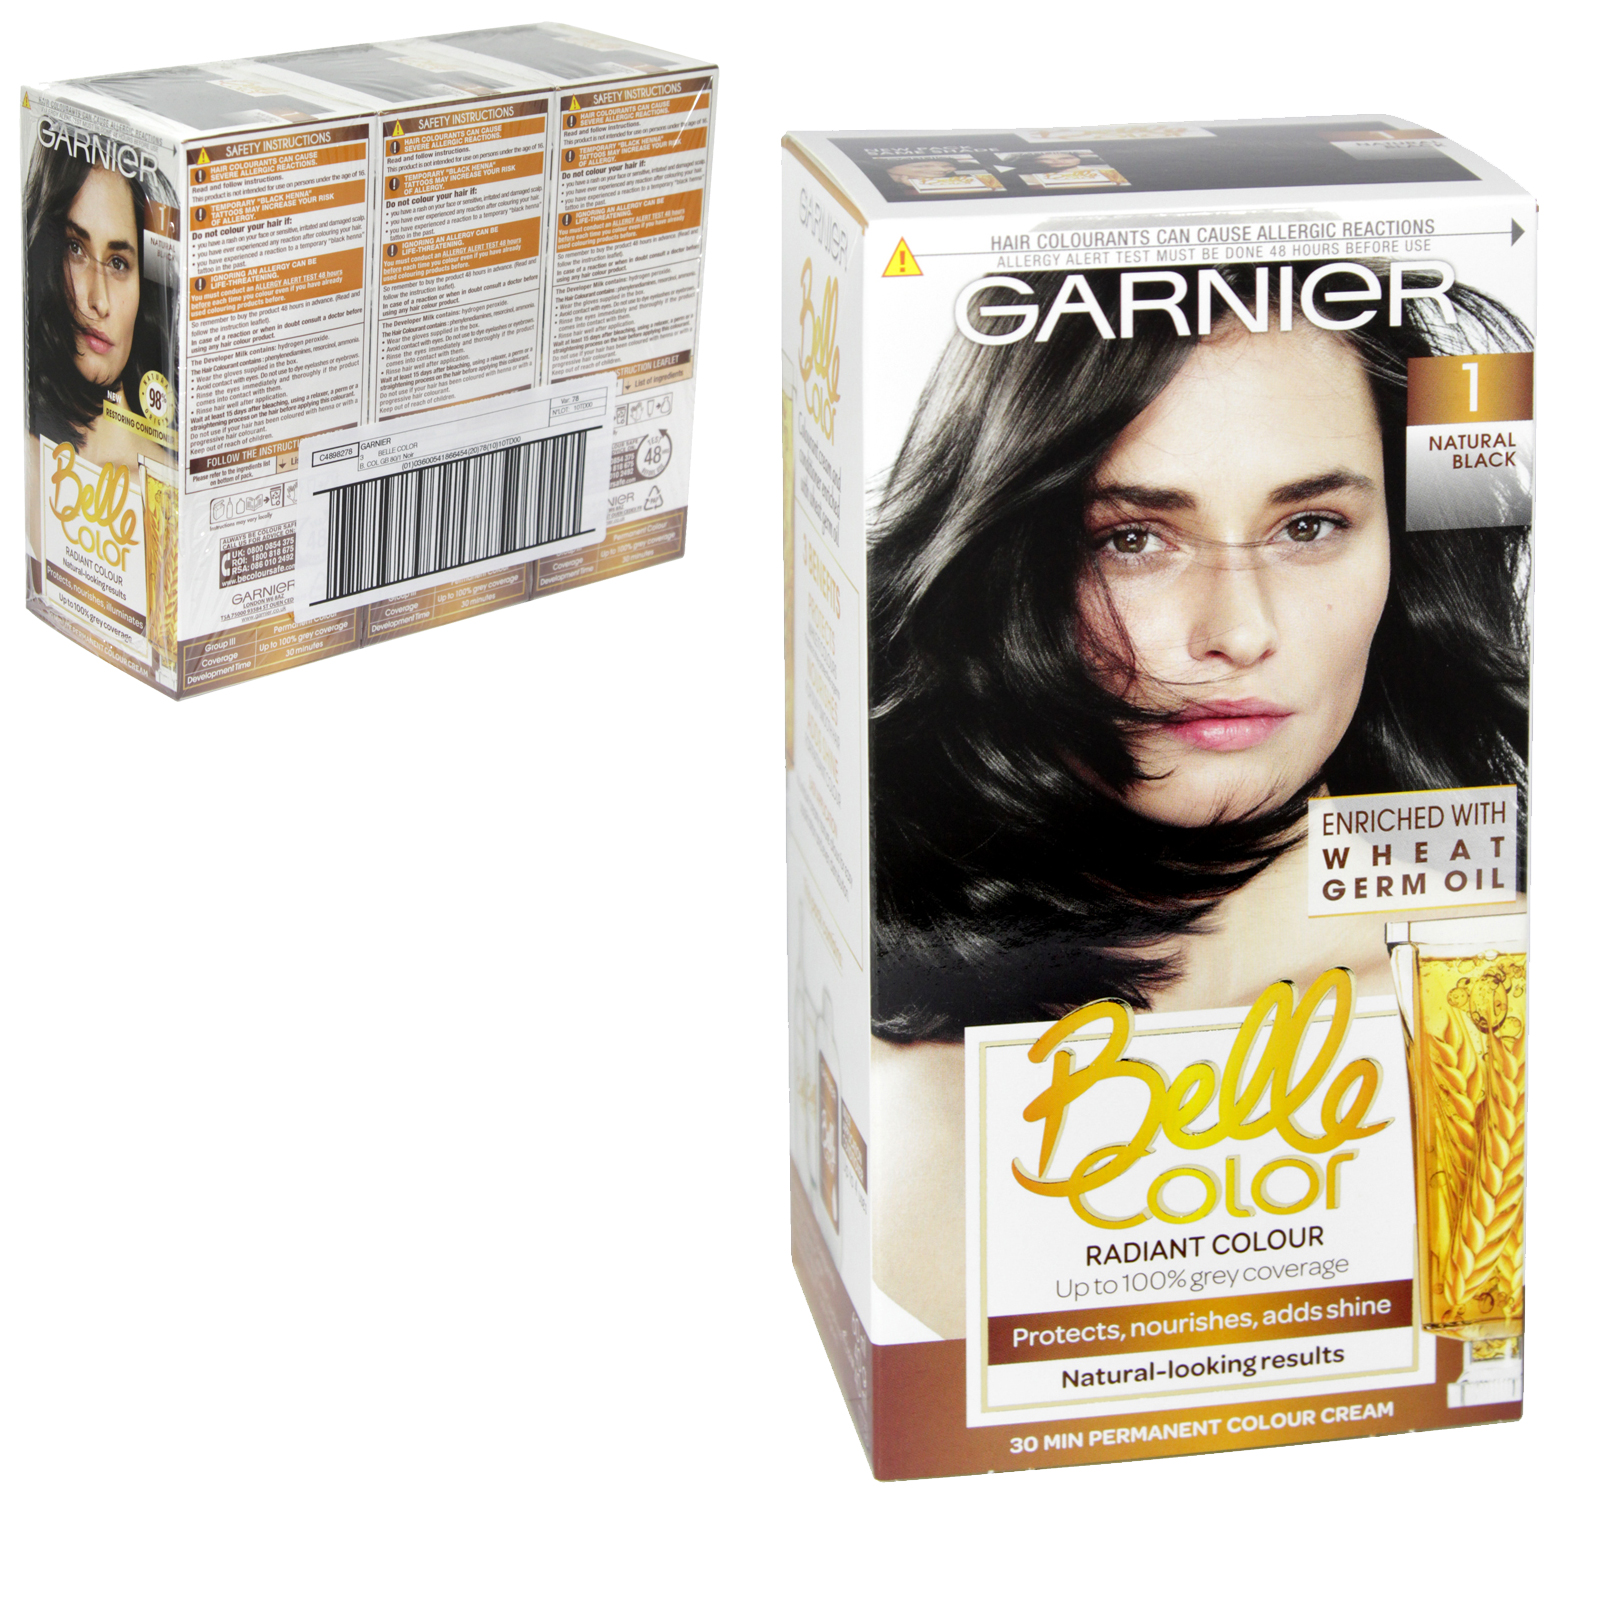 BELLE COLOR 1 NATURAL BLACK X3